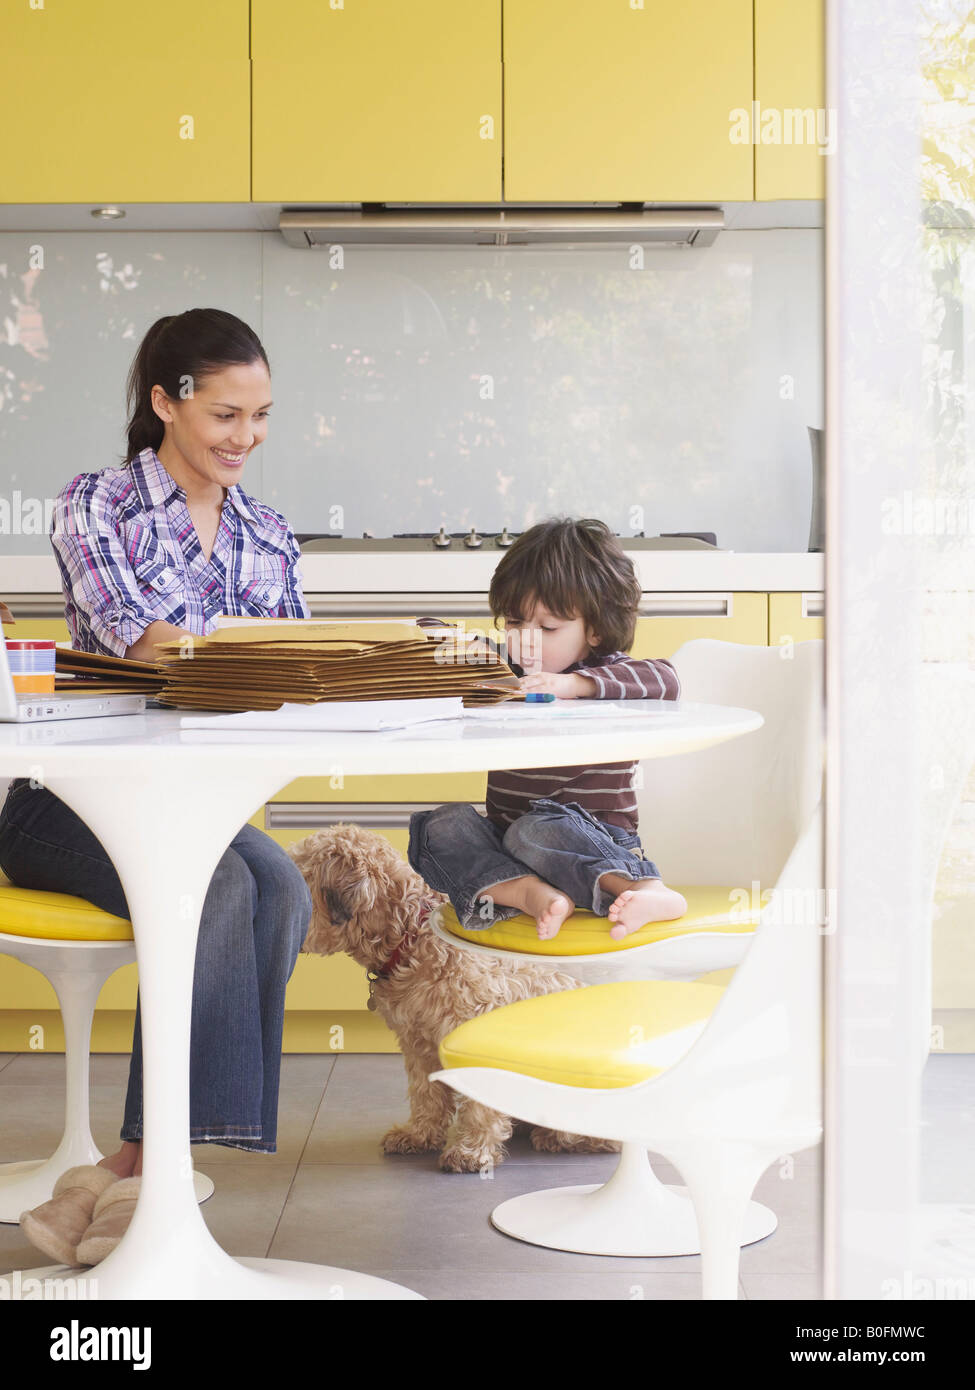 Woman working at home, with son at table - Stock Image